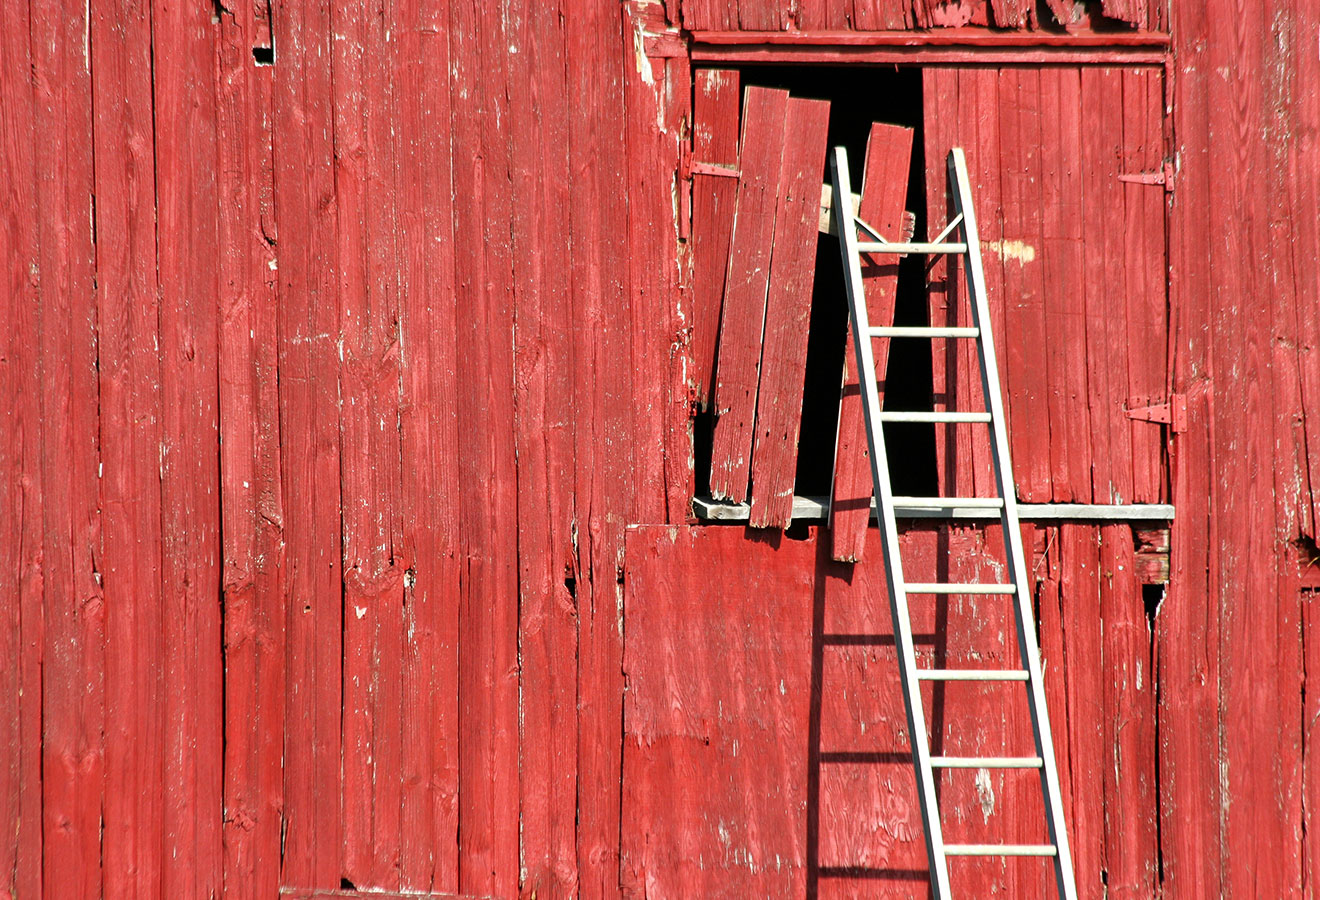 Is your ladder against the wrong wall? Episode 10